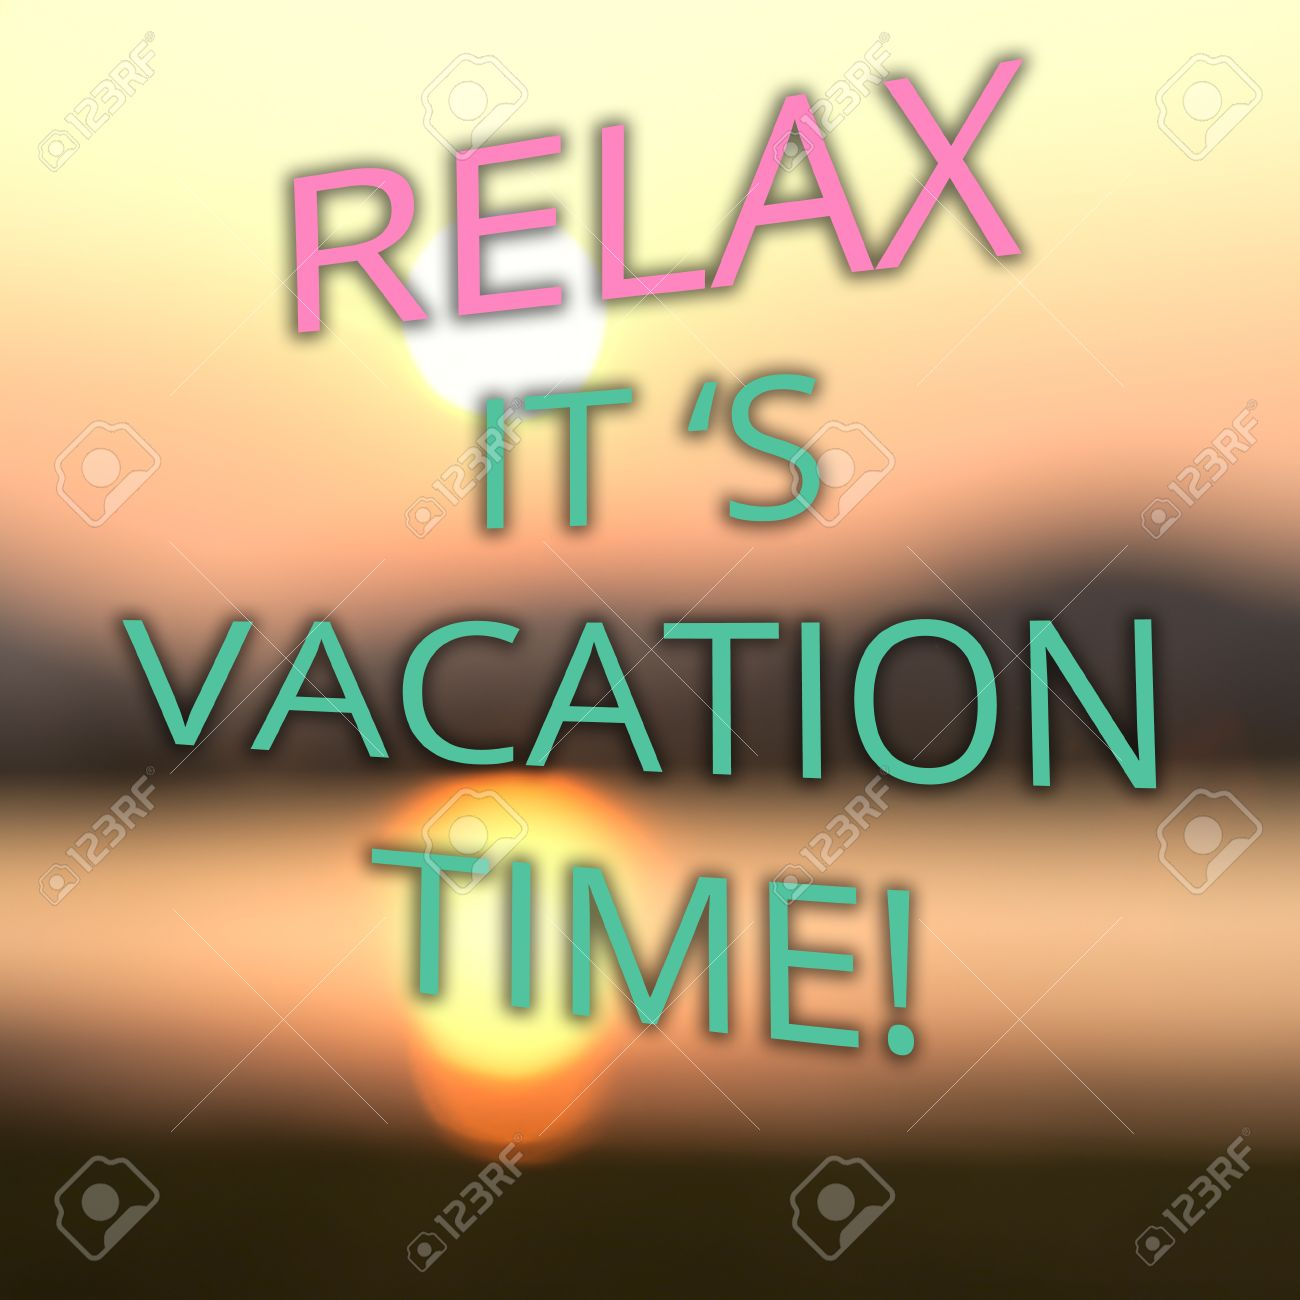 Summer Vacation Poster With Text Relax It S Vacation Time On Stock Photo Picture And Royalty Free Image Image 44232606